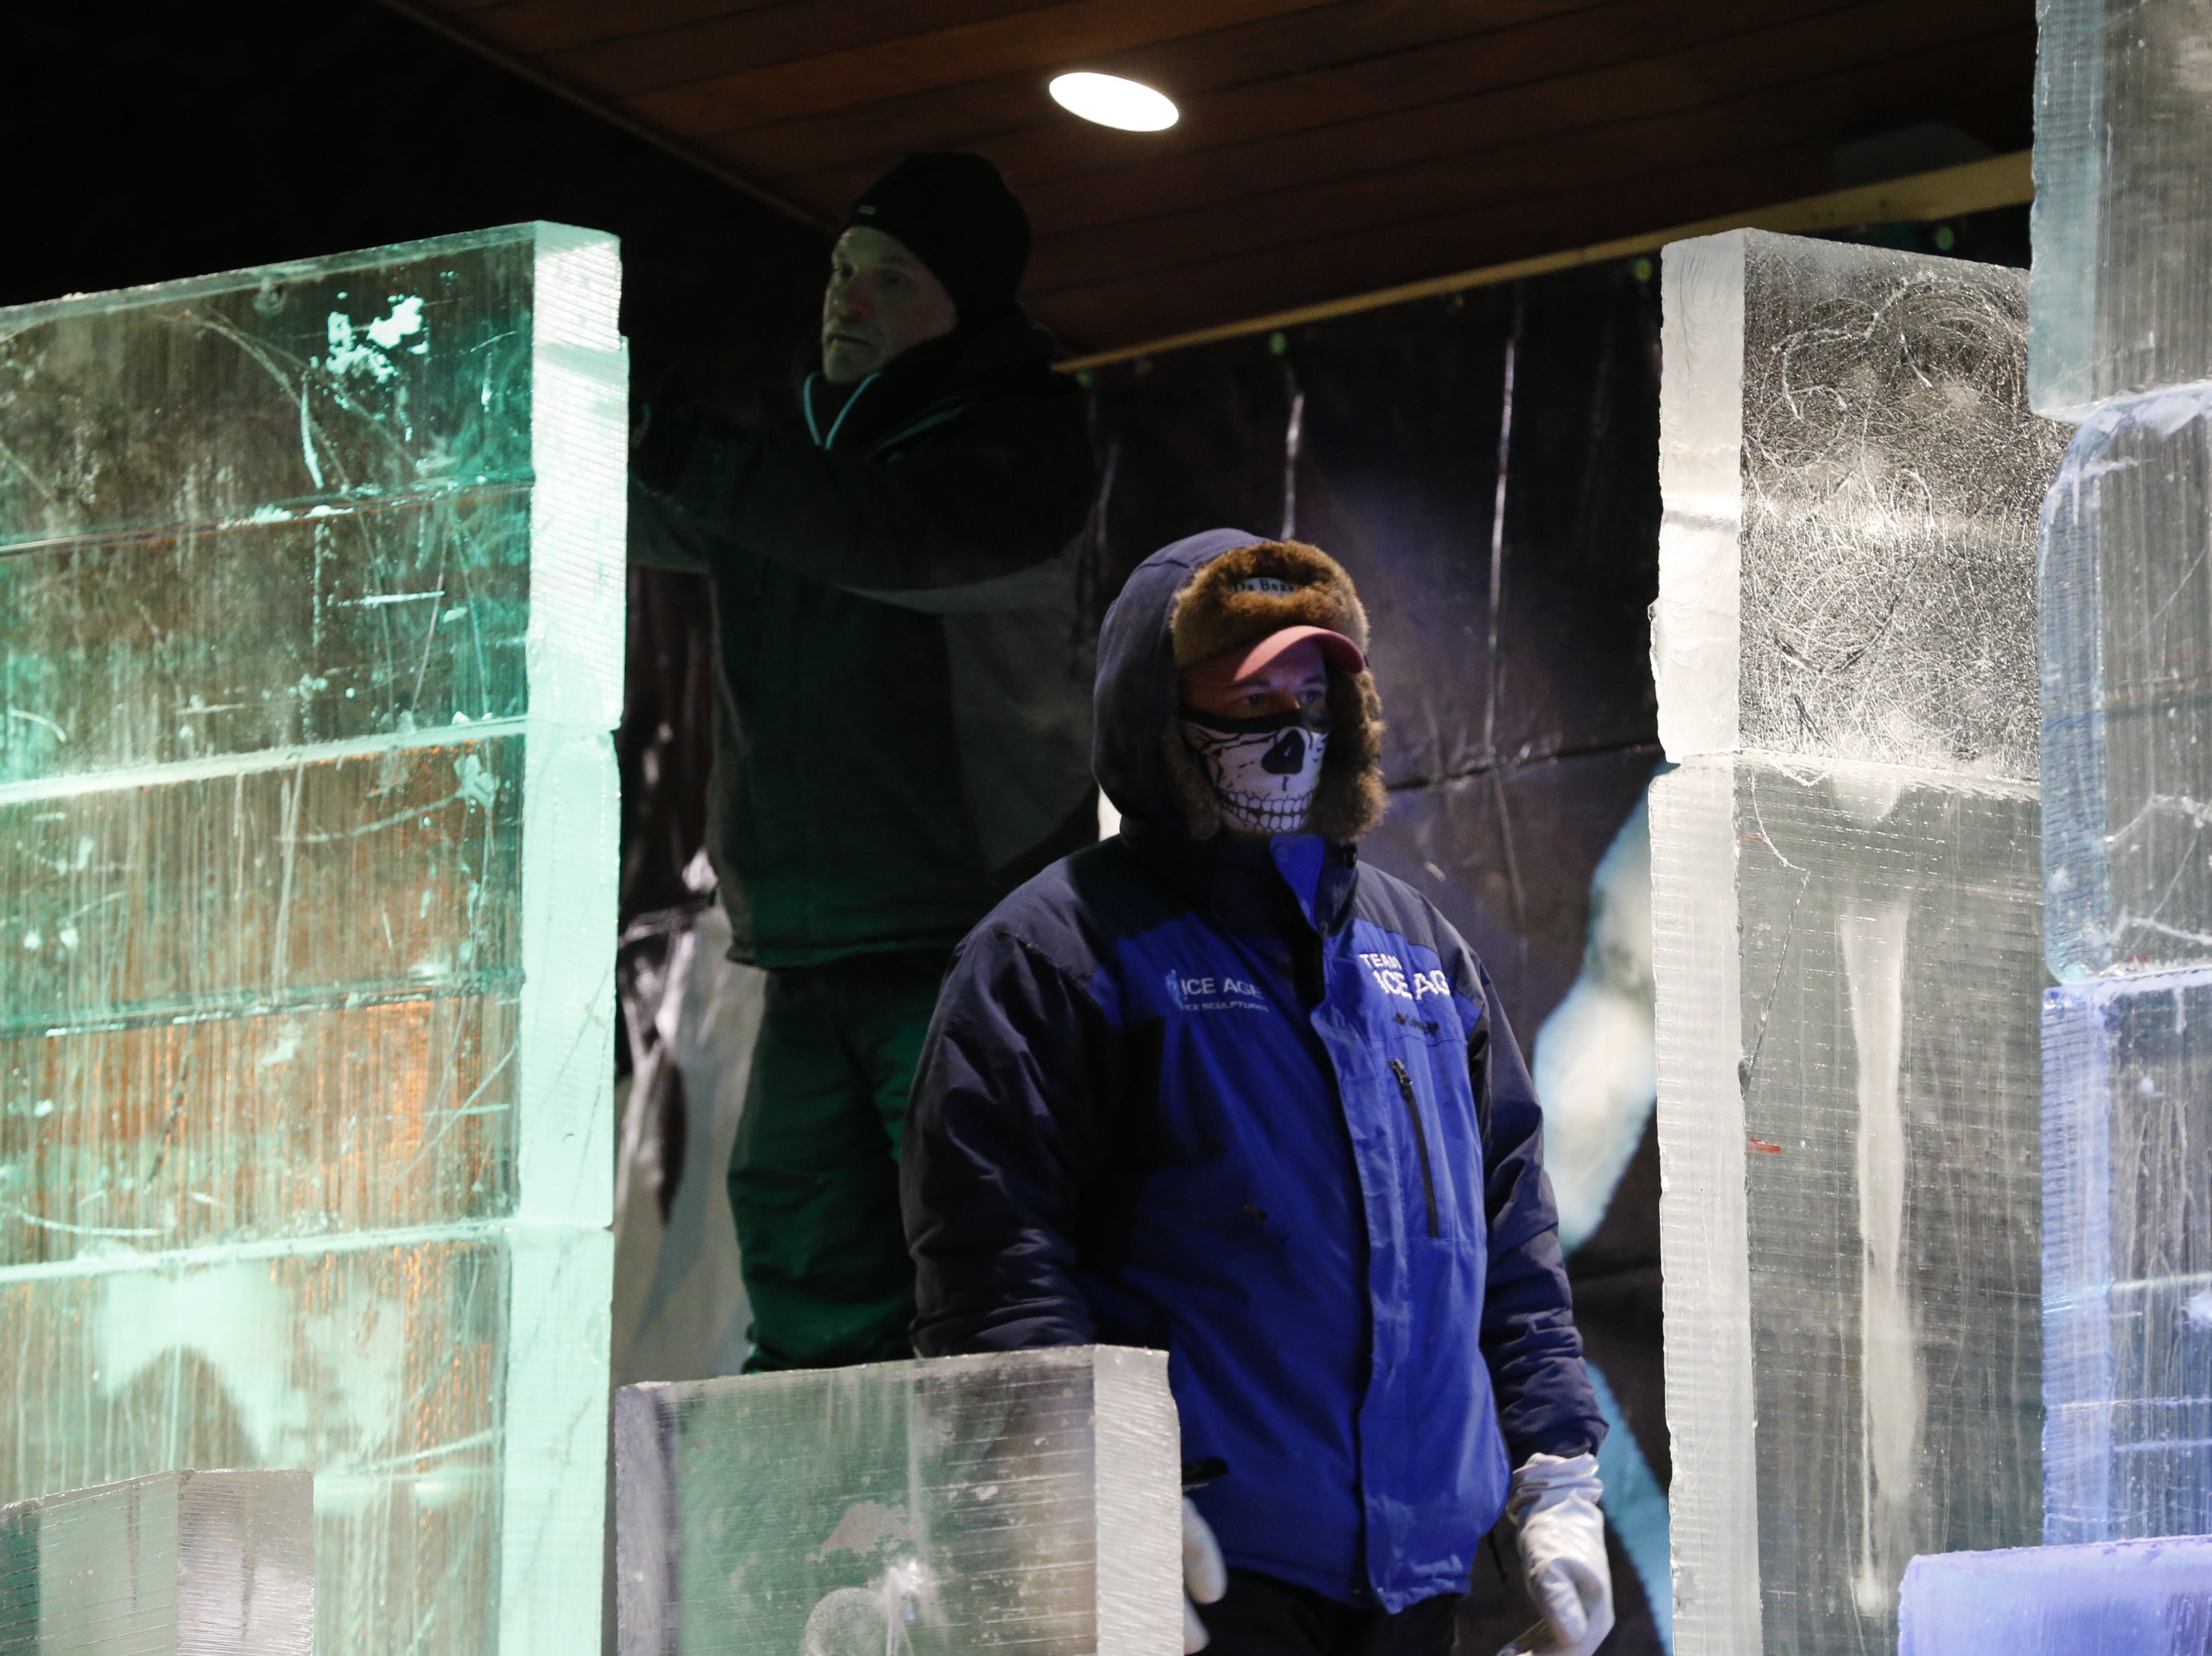 """Ice carvers prepare for Friday night's """"Big Reveal"""" event during the Meltdown Winter Ice Festival at Jack Elstro Plaza in Richmond."""